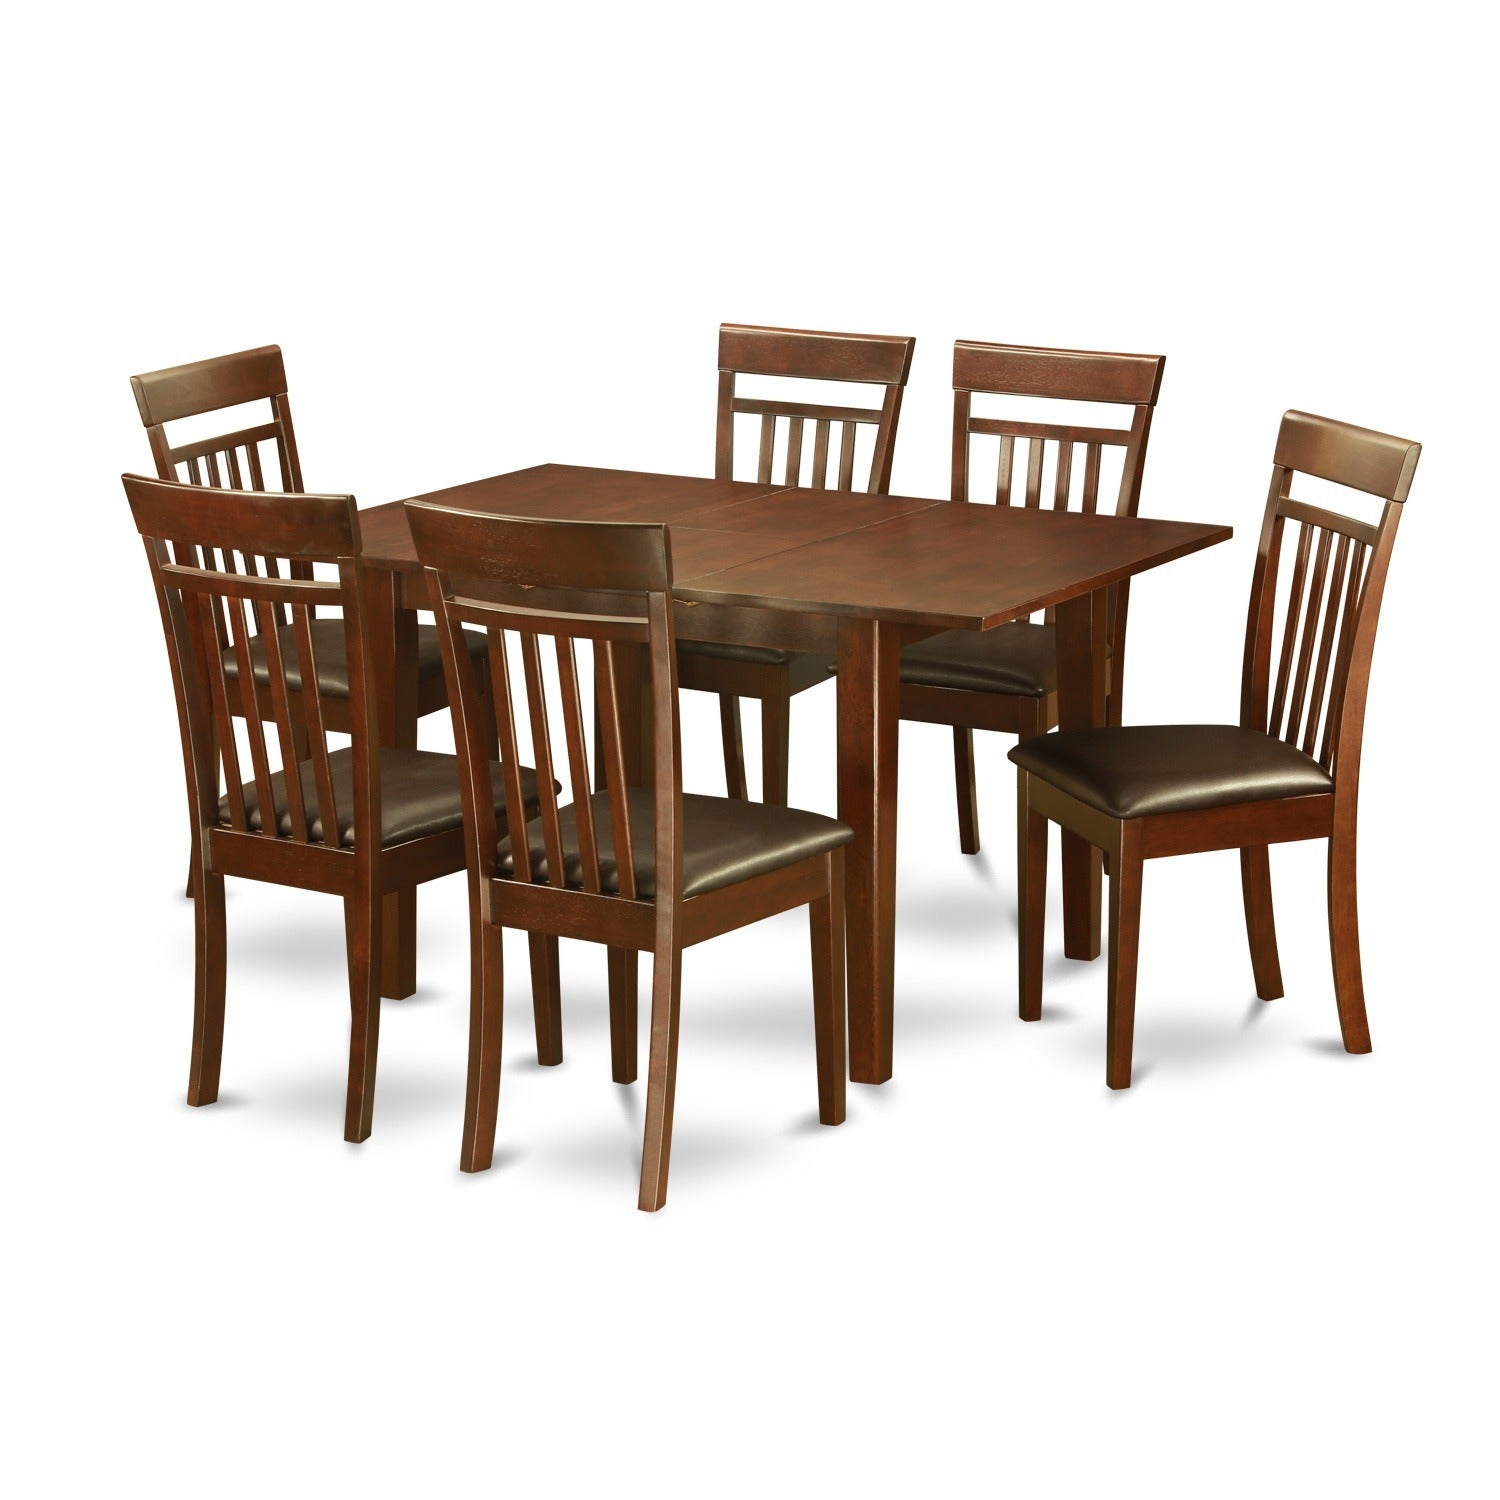 Shop Black Friday Deals On 7 Piece Kitchen Nook Small Table And 6 Dining Room Chairs On Sale Overstock 10296335 Faux Leather